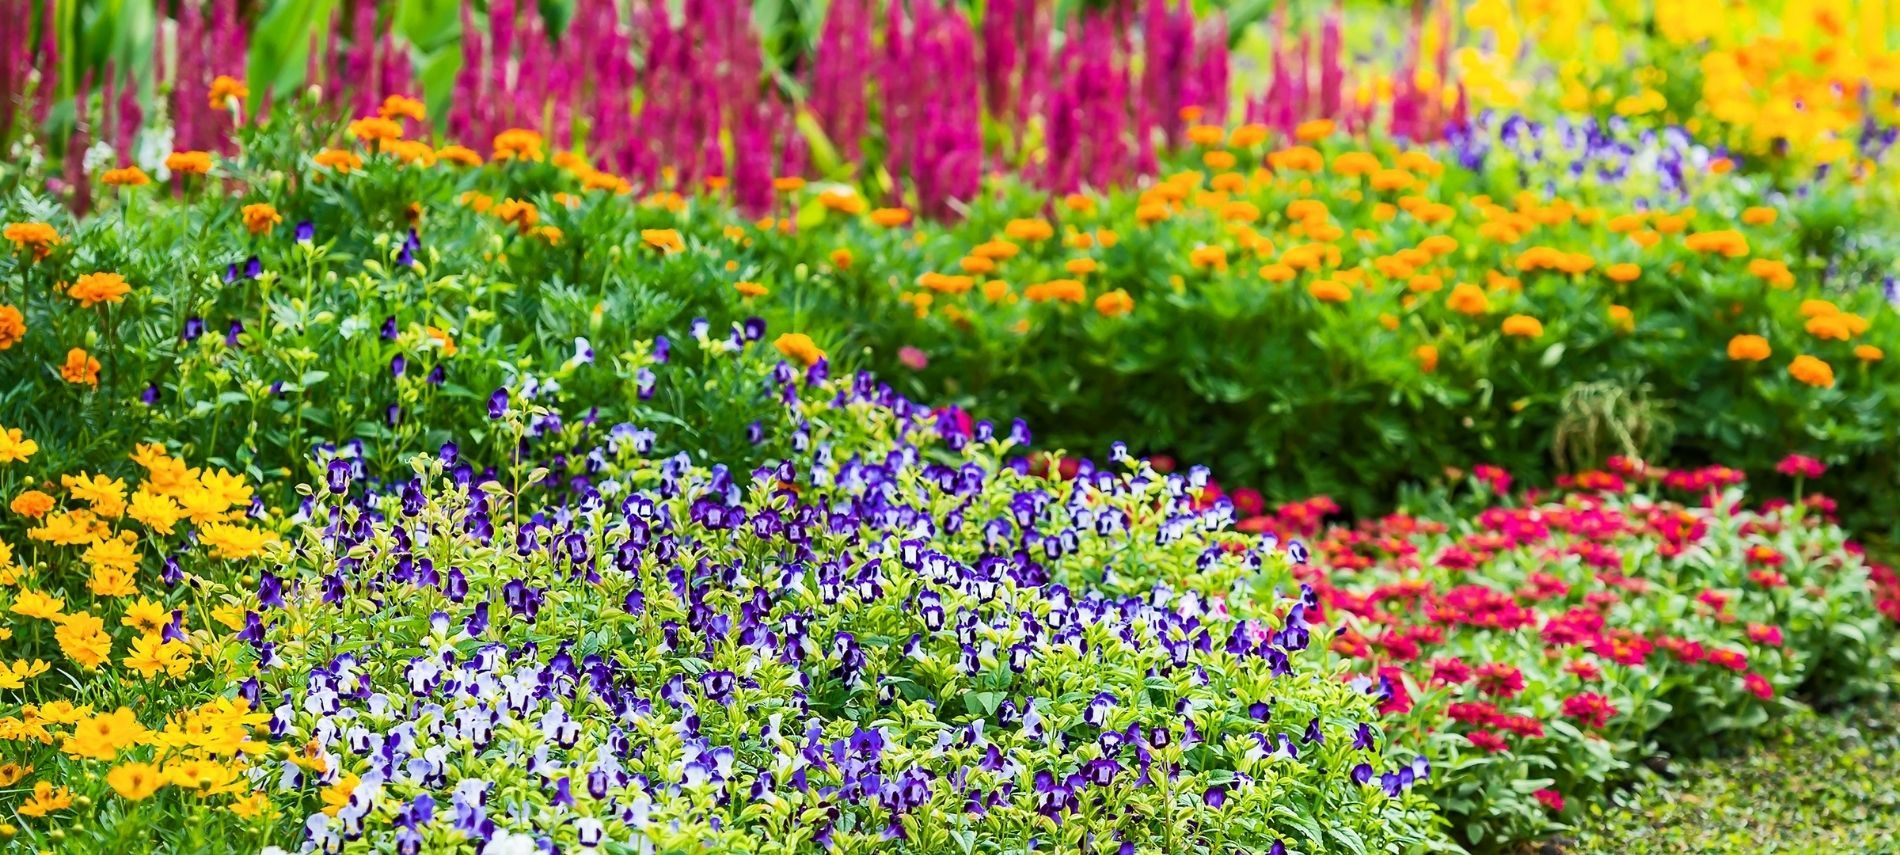 Manicured rows of brightly colored flowers growing outside.